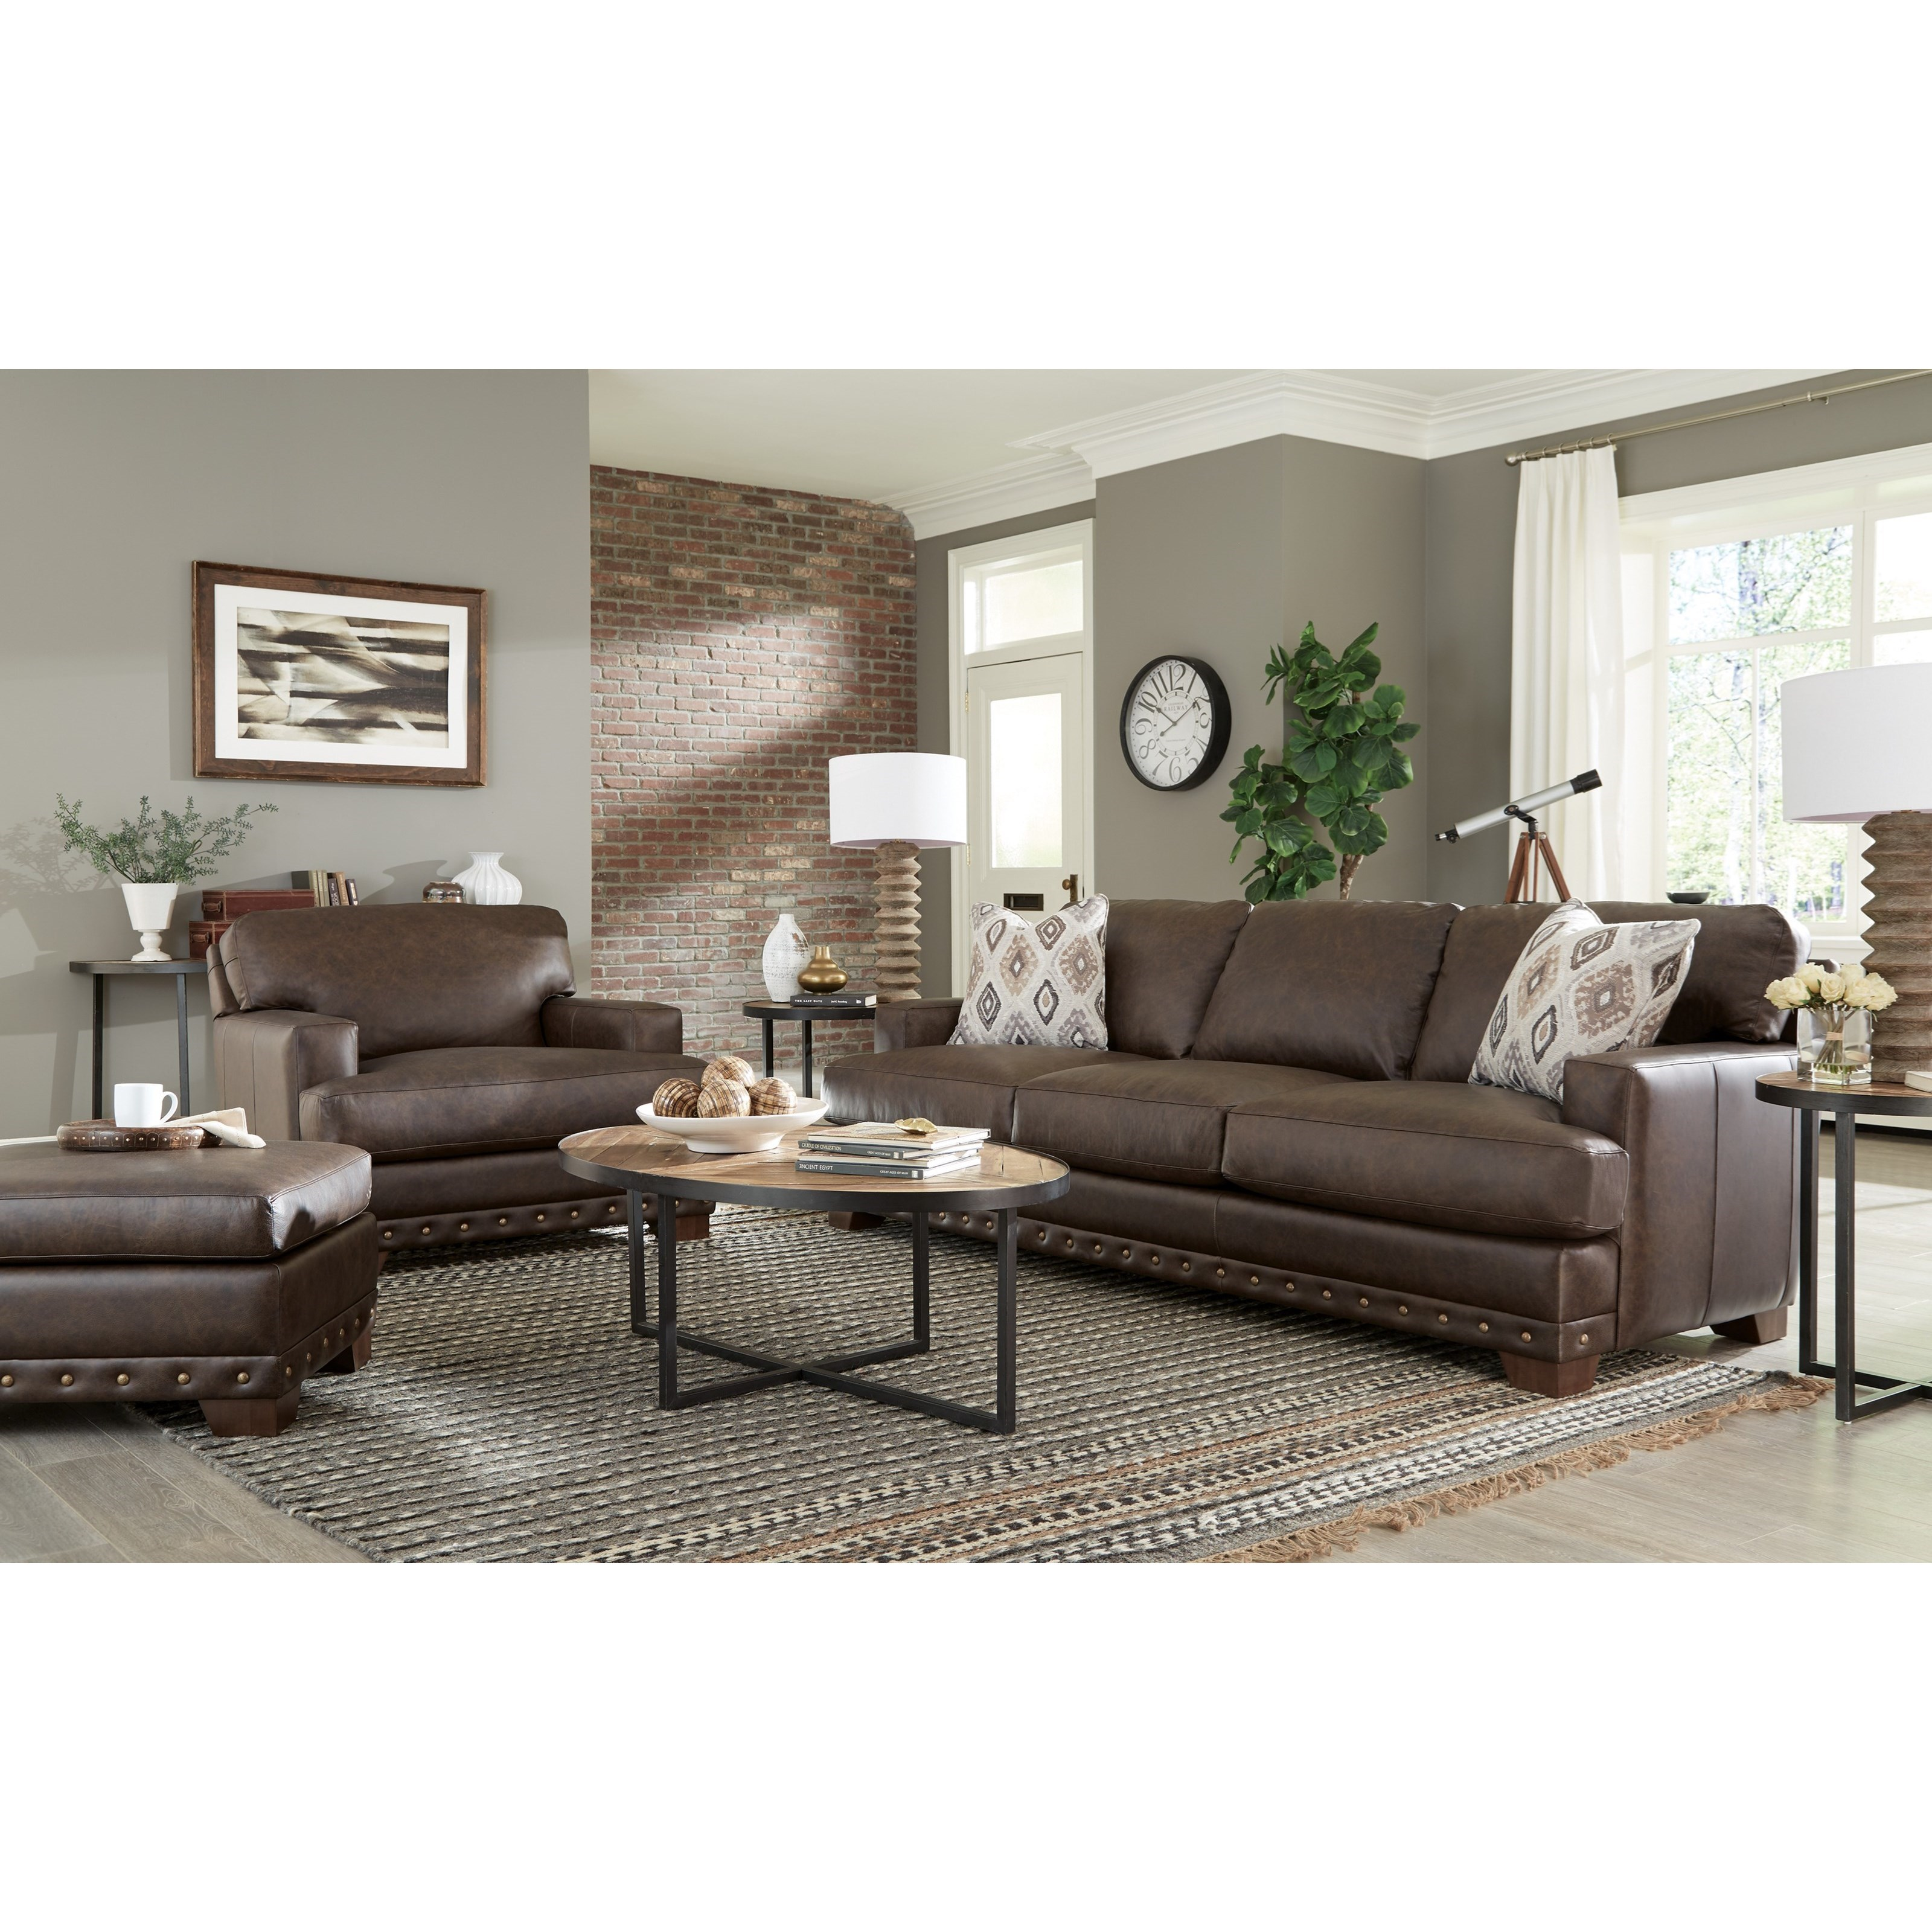 L782750 Living Room Group by Craftmaster at Baer's Furniture